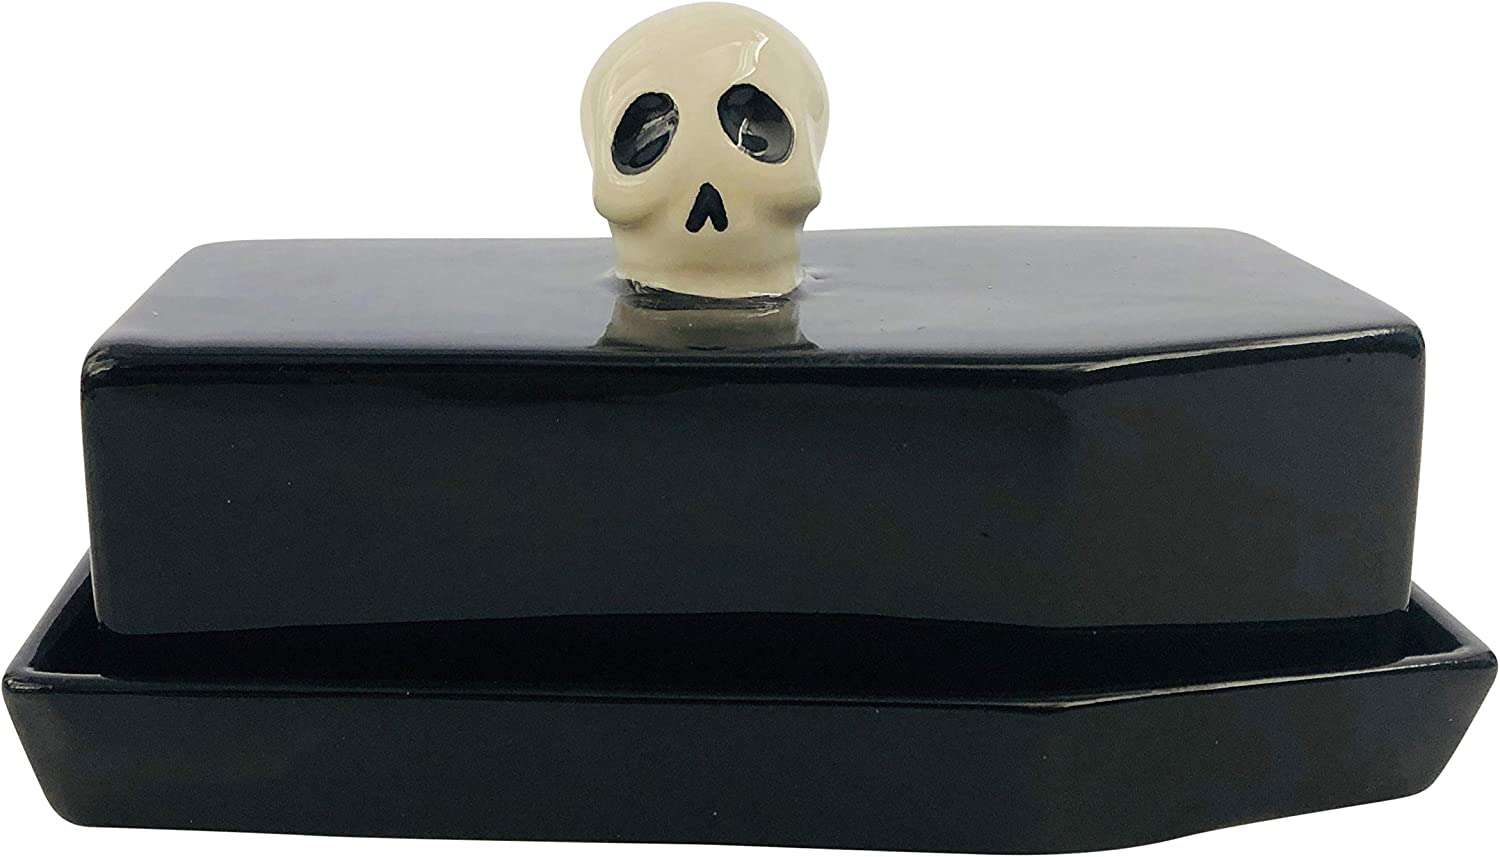 Boston Warehouse Coffin Shaped with Skull Handle Covered Butter Dish, Standard, Black